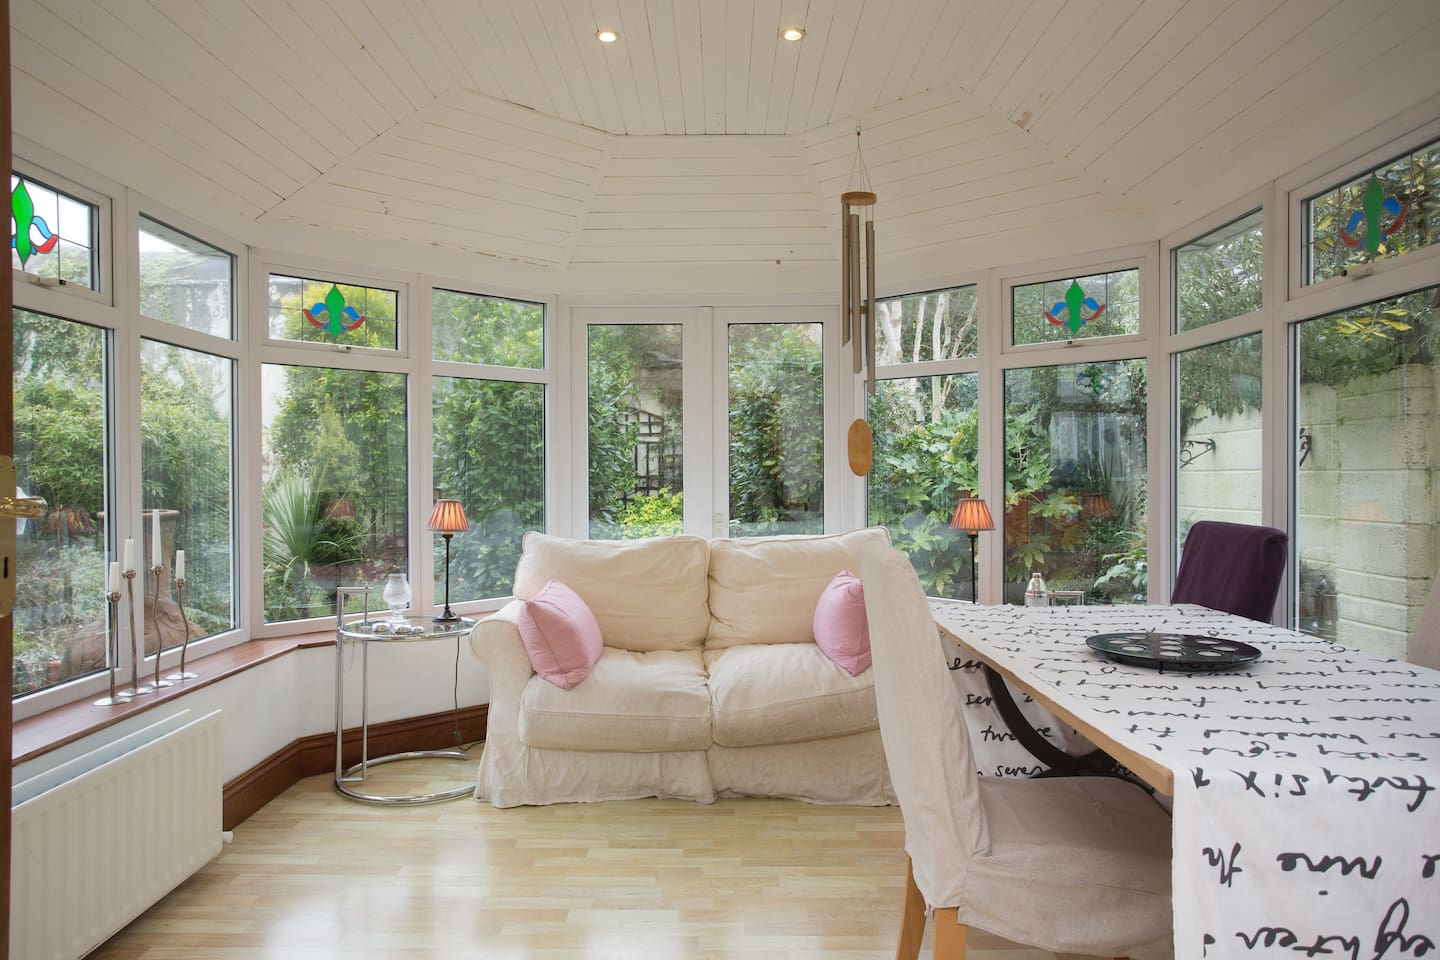 sunroom ...beautiful  space on a summer's day.